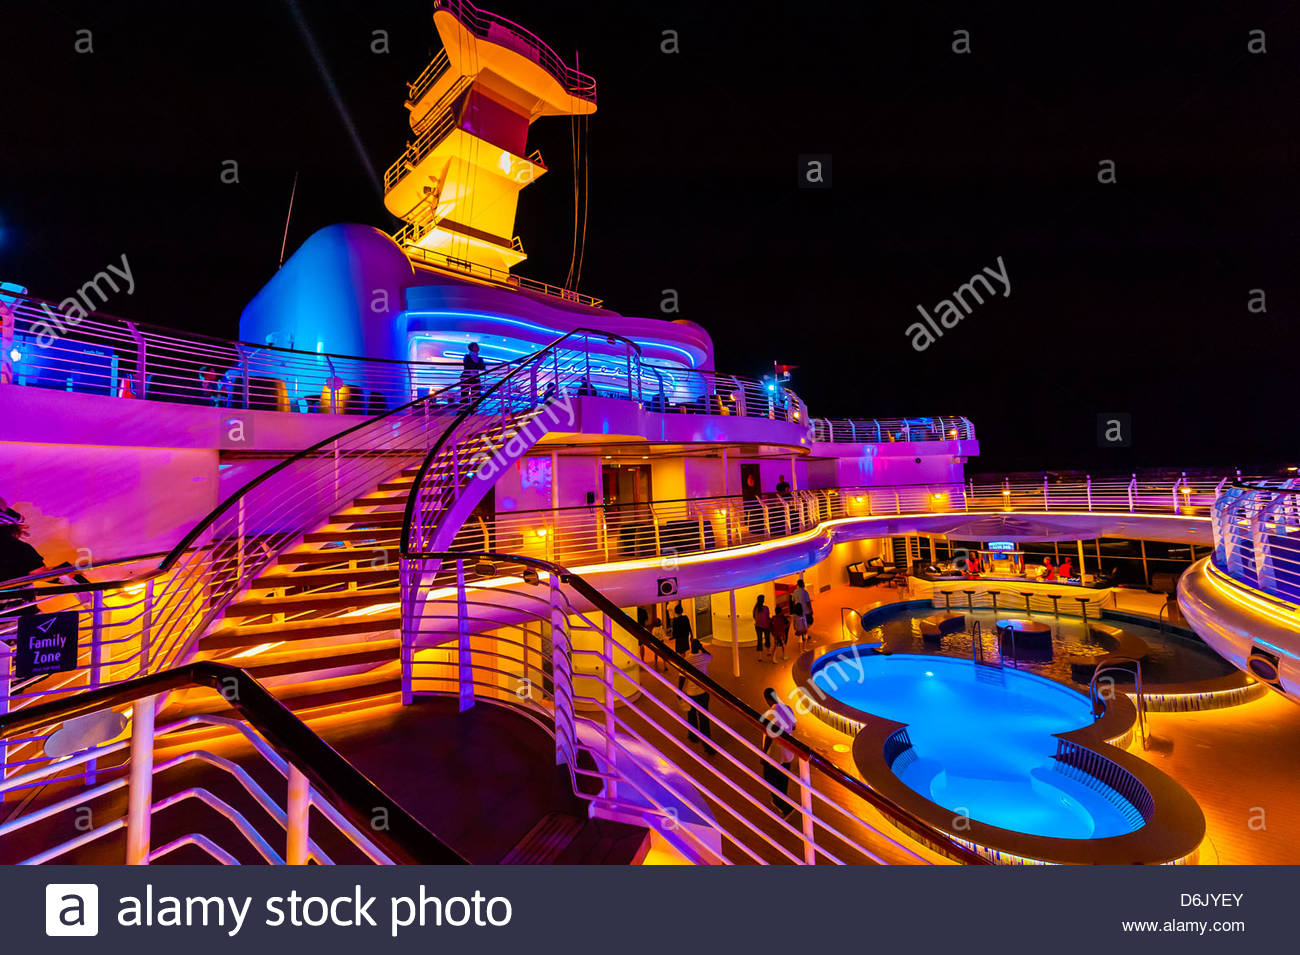 On Deck On The New Disney Dream Cruise Ship Disney Cruise Line - The dream cruise ship disney